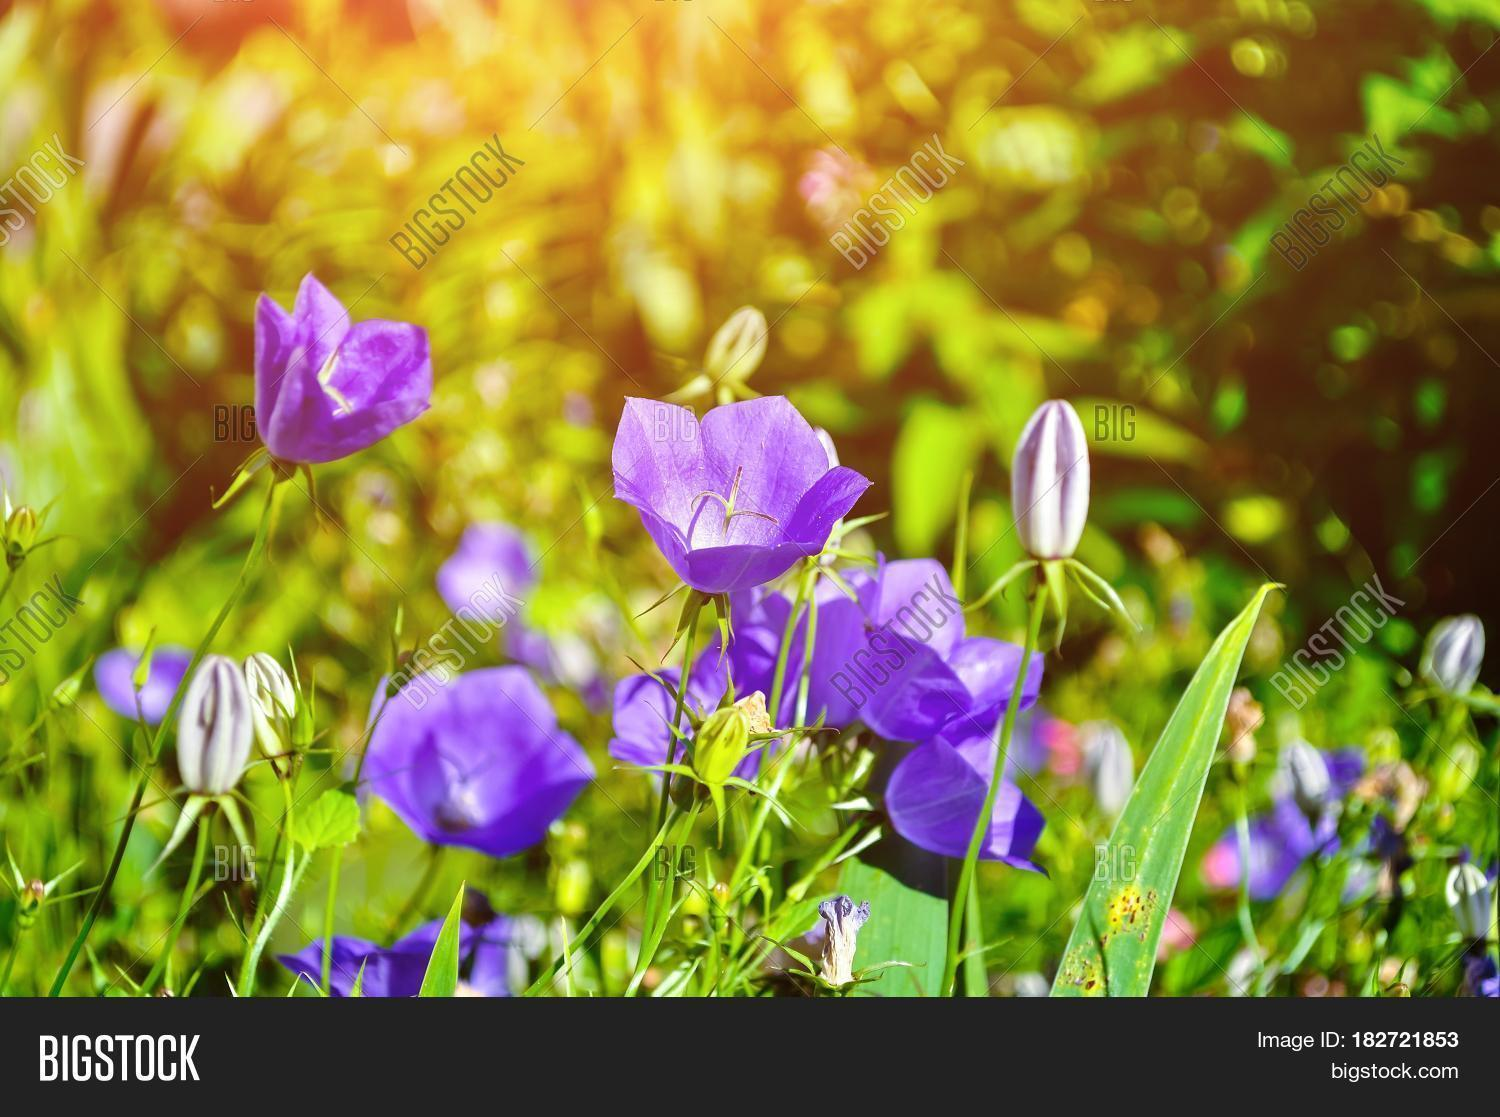 Spring Background Image Photo Free Trial Bigstock